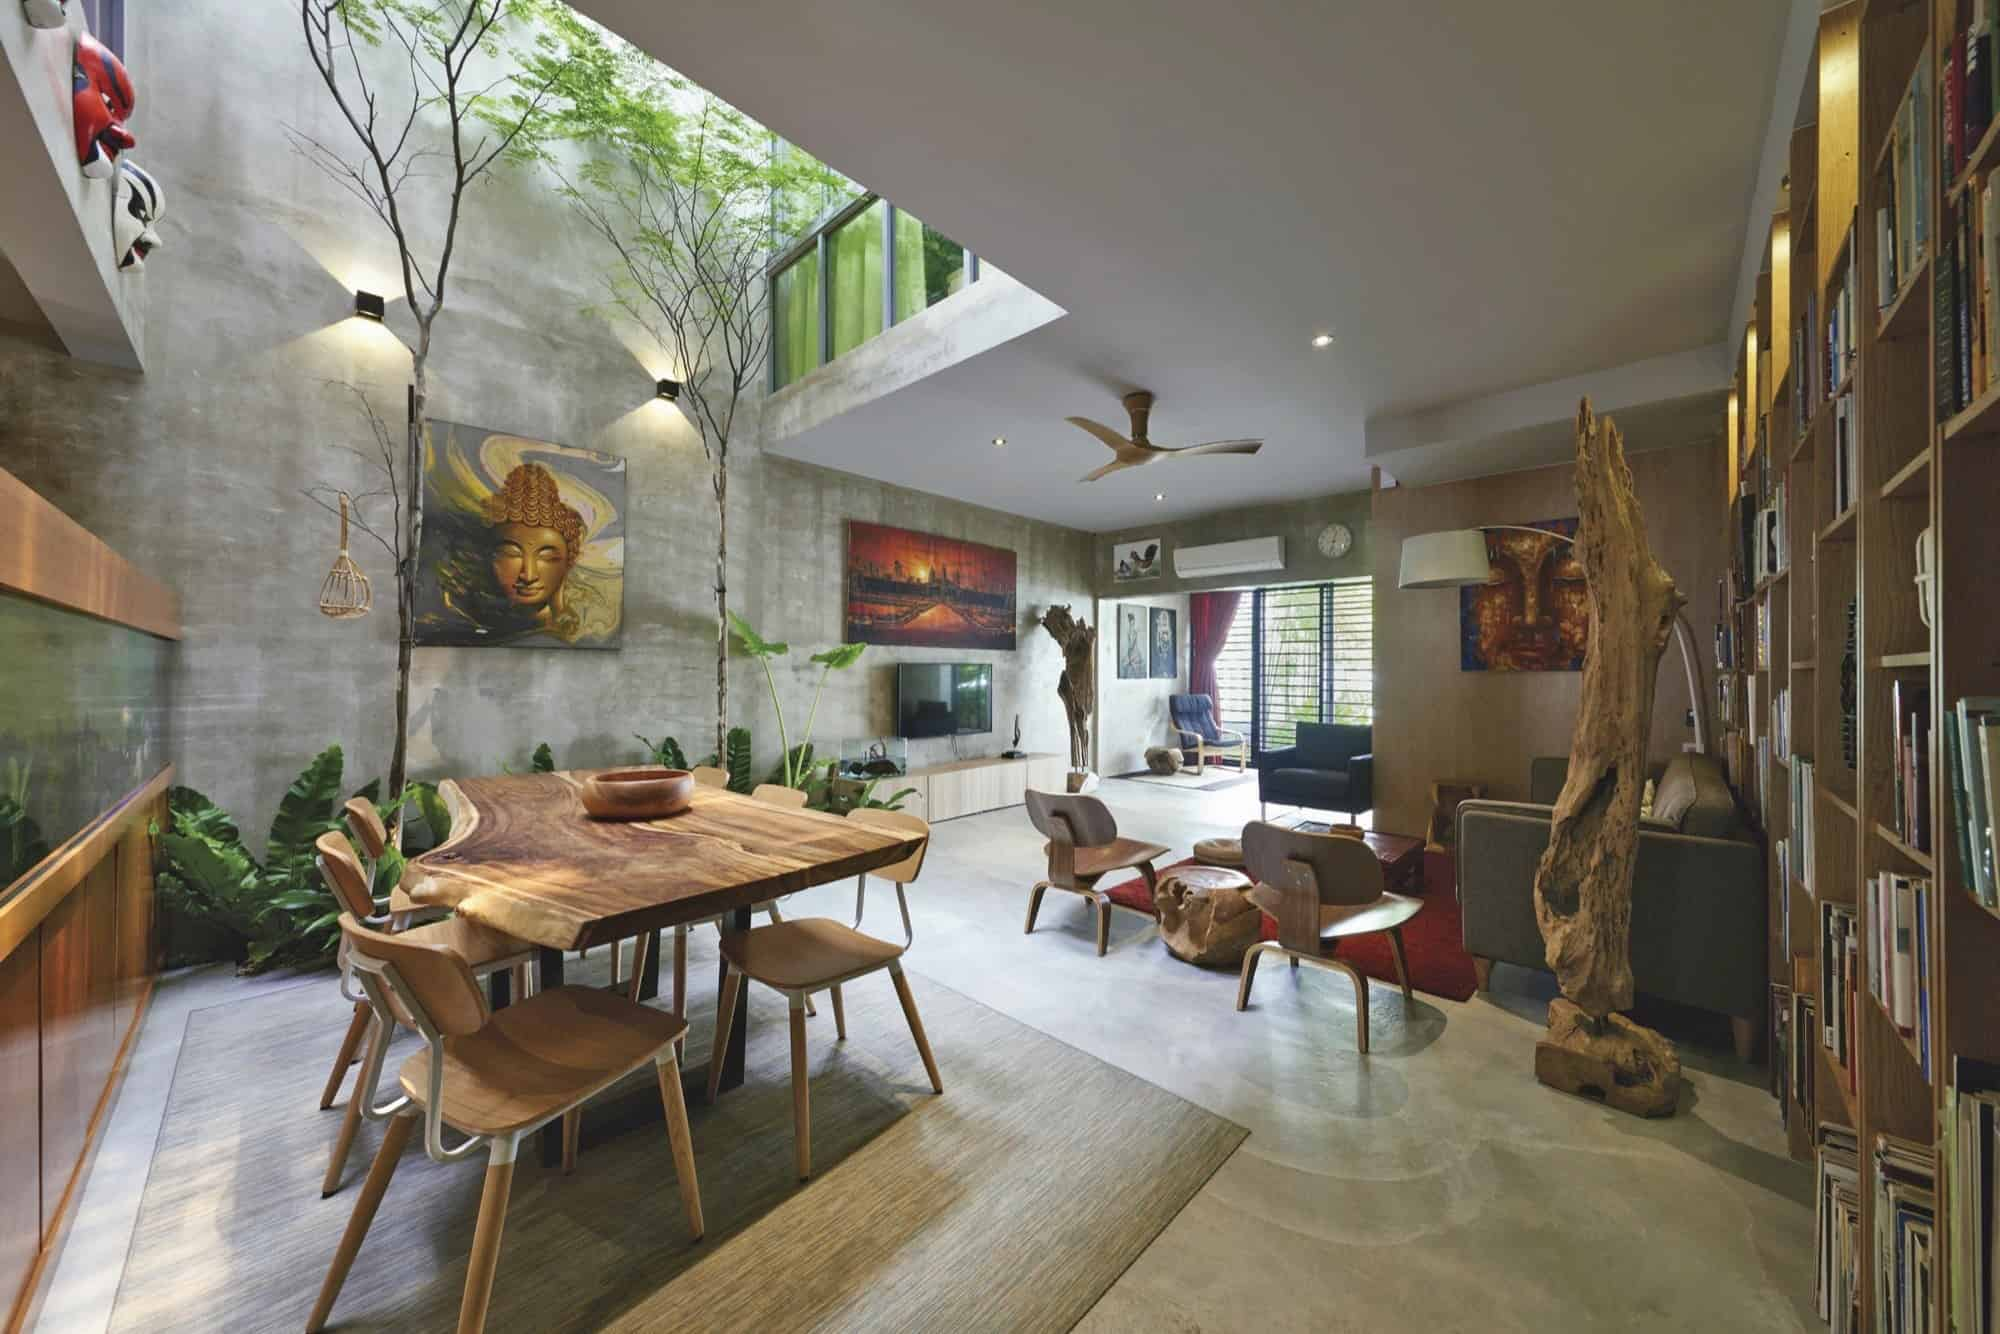 Trees and shrubs create faux courtyard inside house for Design in a box interior design